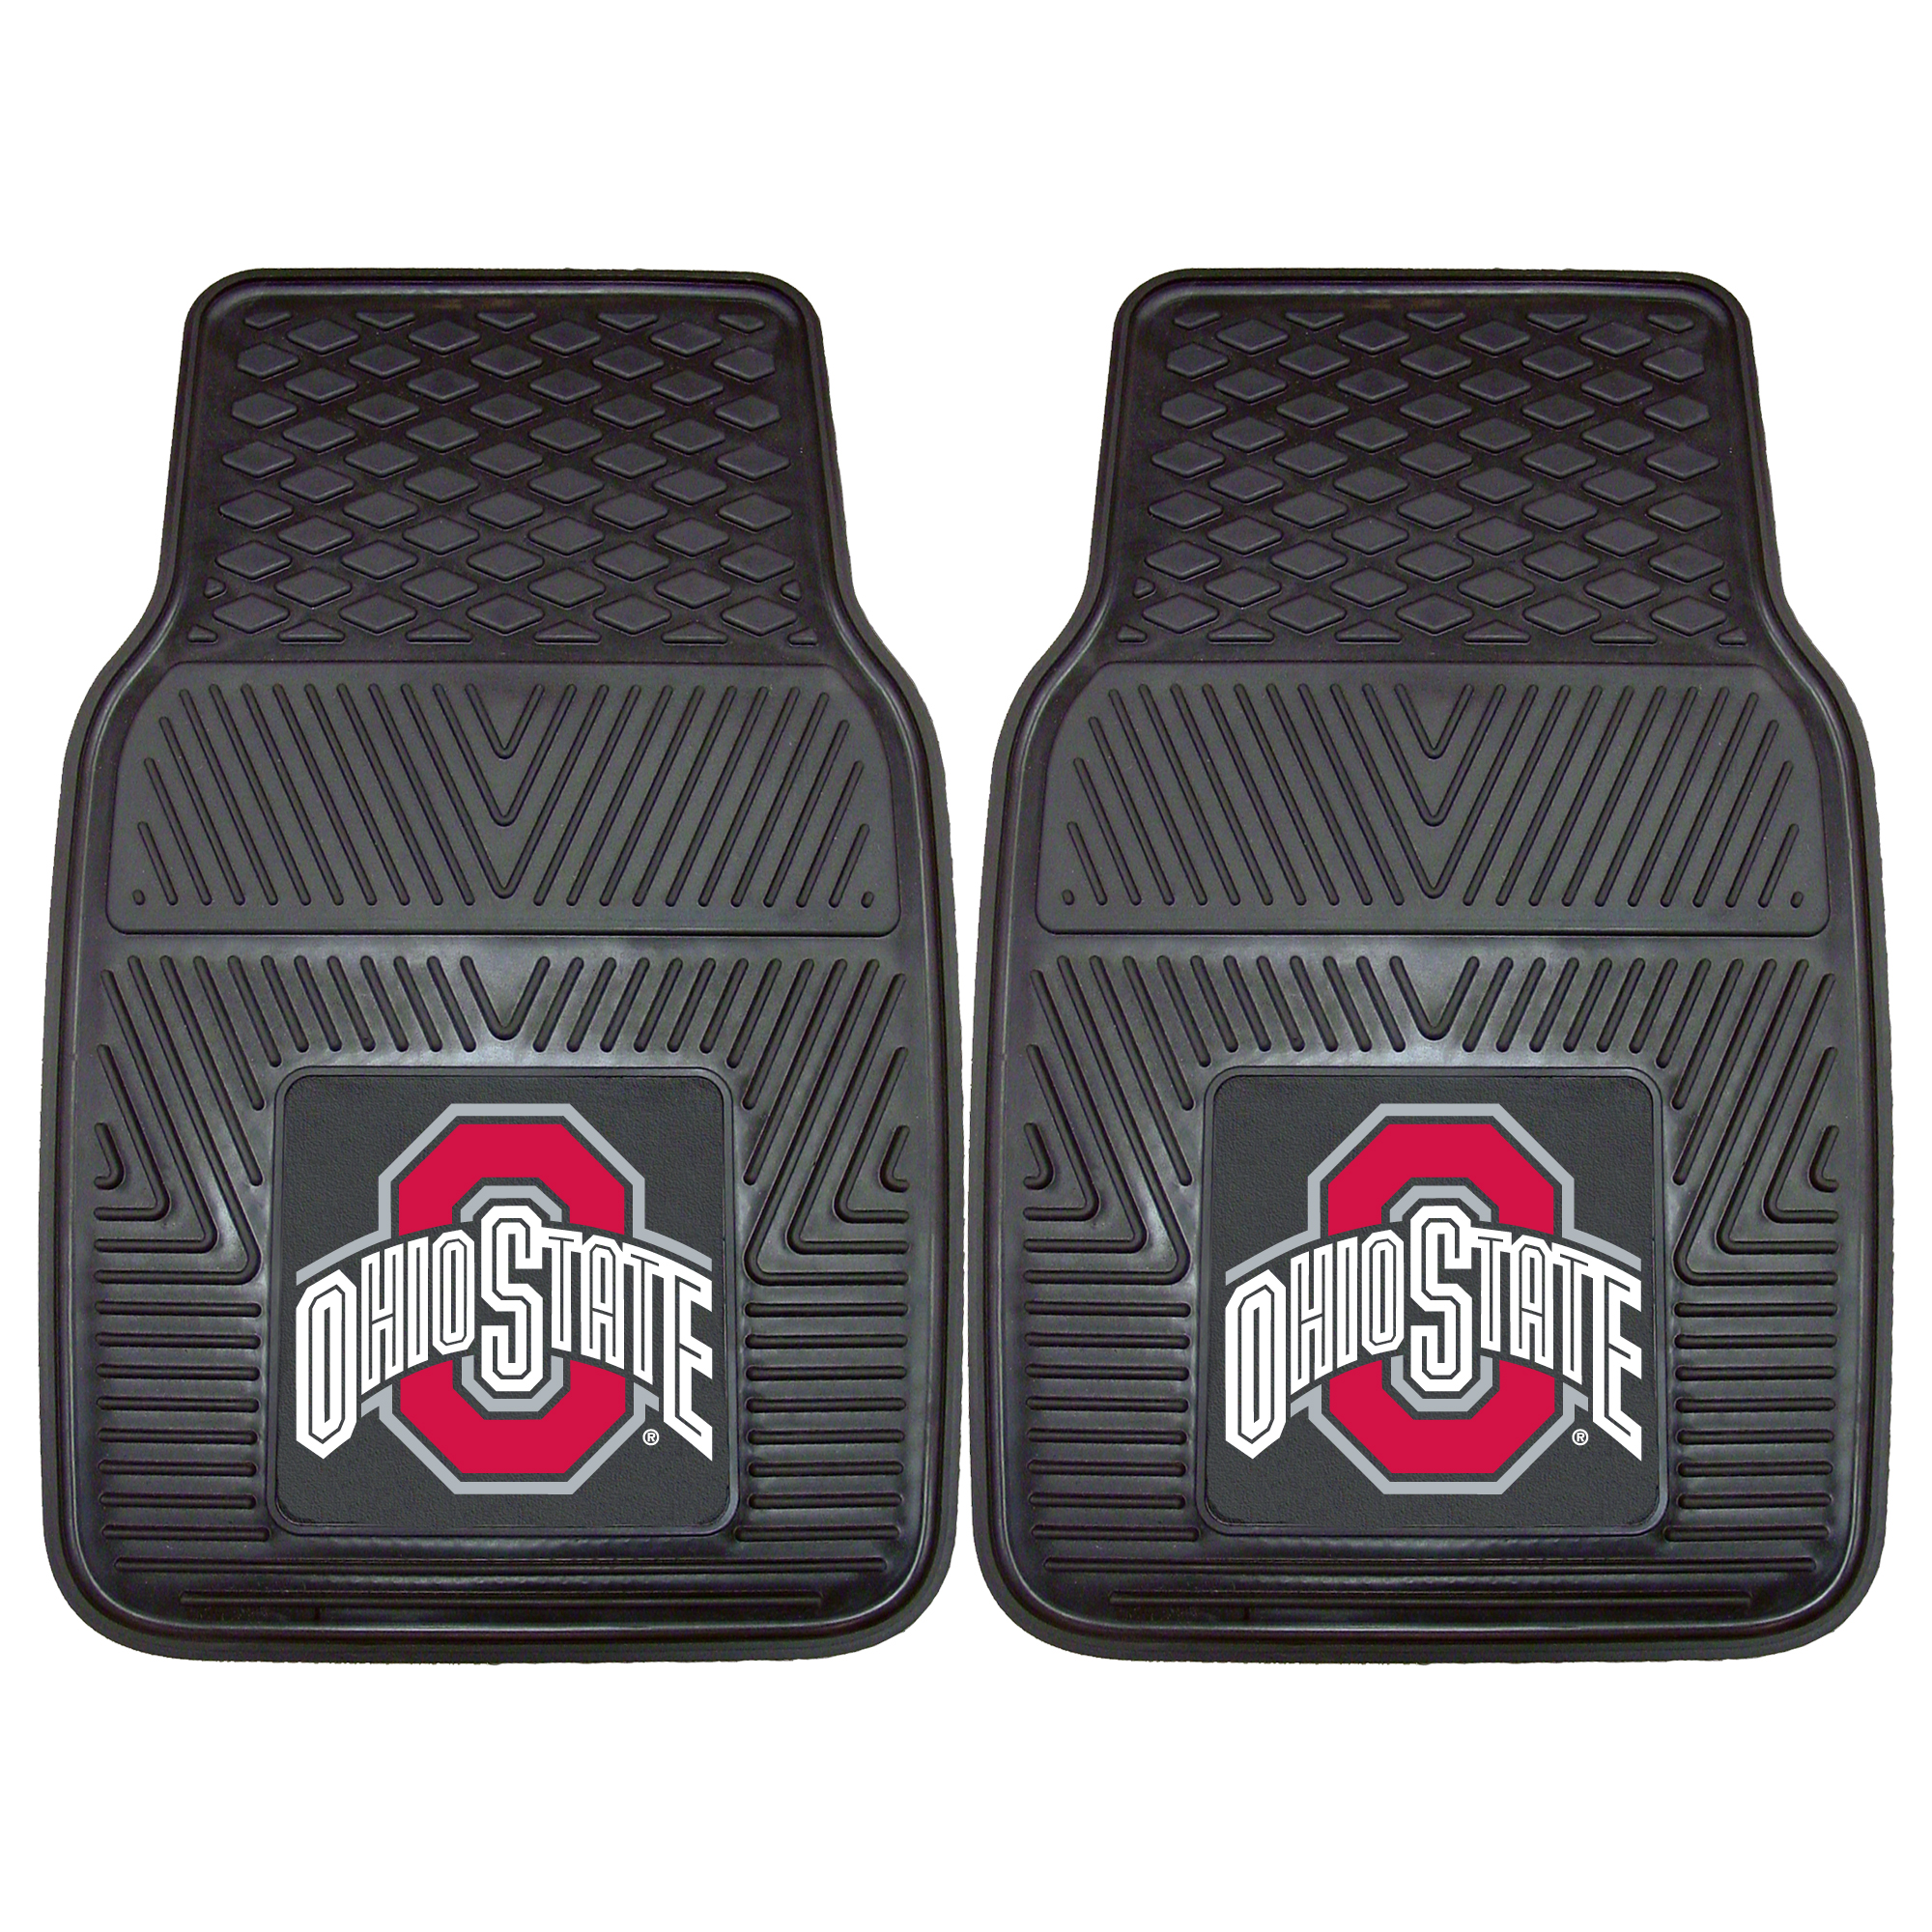 2 piece vinyl car mat set with Ohio State Buckeyes Officially Licensed NCAA Team Logo.